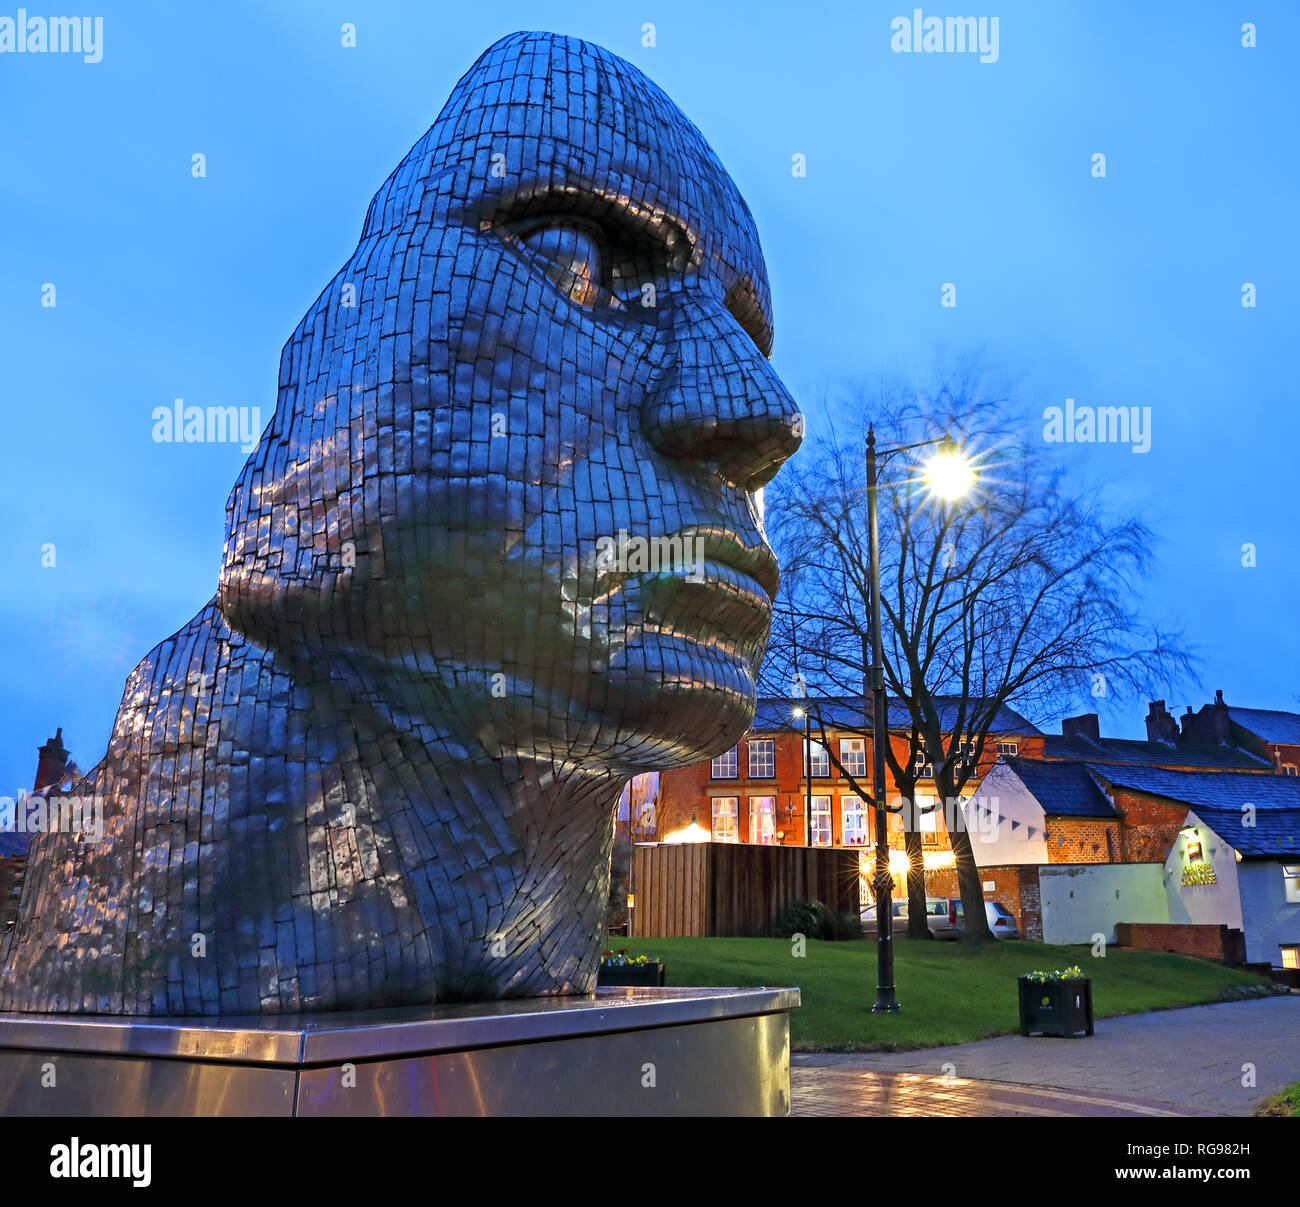 The Face Of Wigan at dusk, night image of the steel structure in town centre, - Stock Image